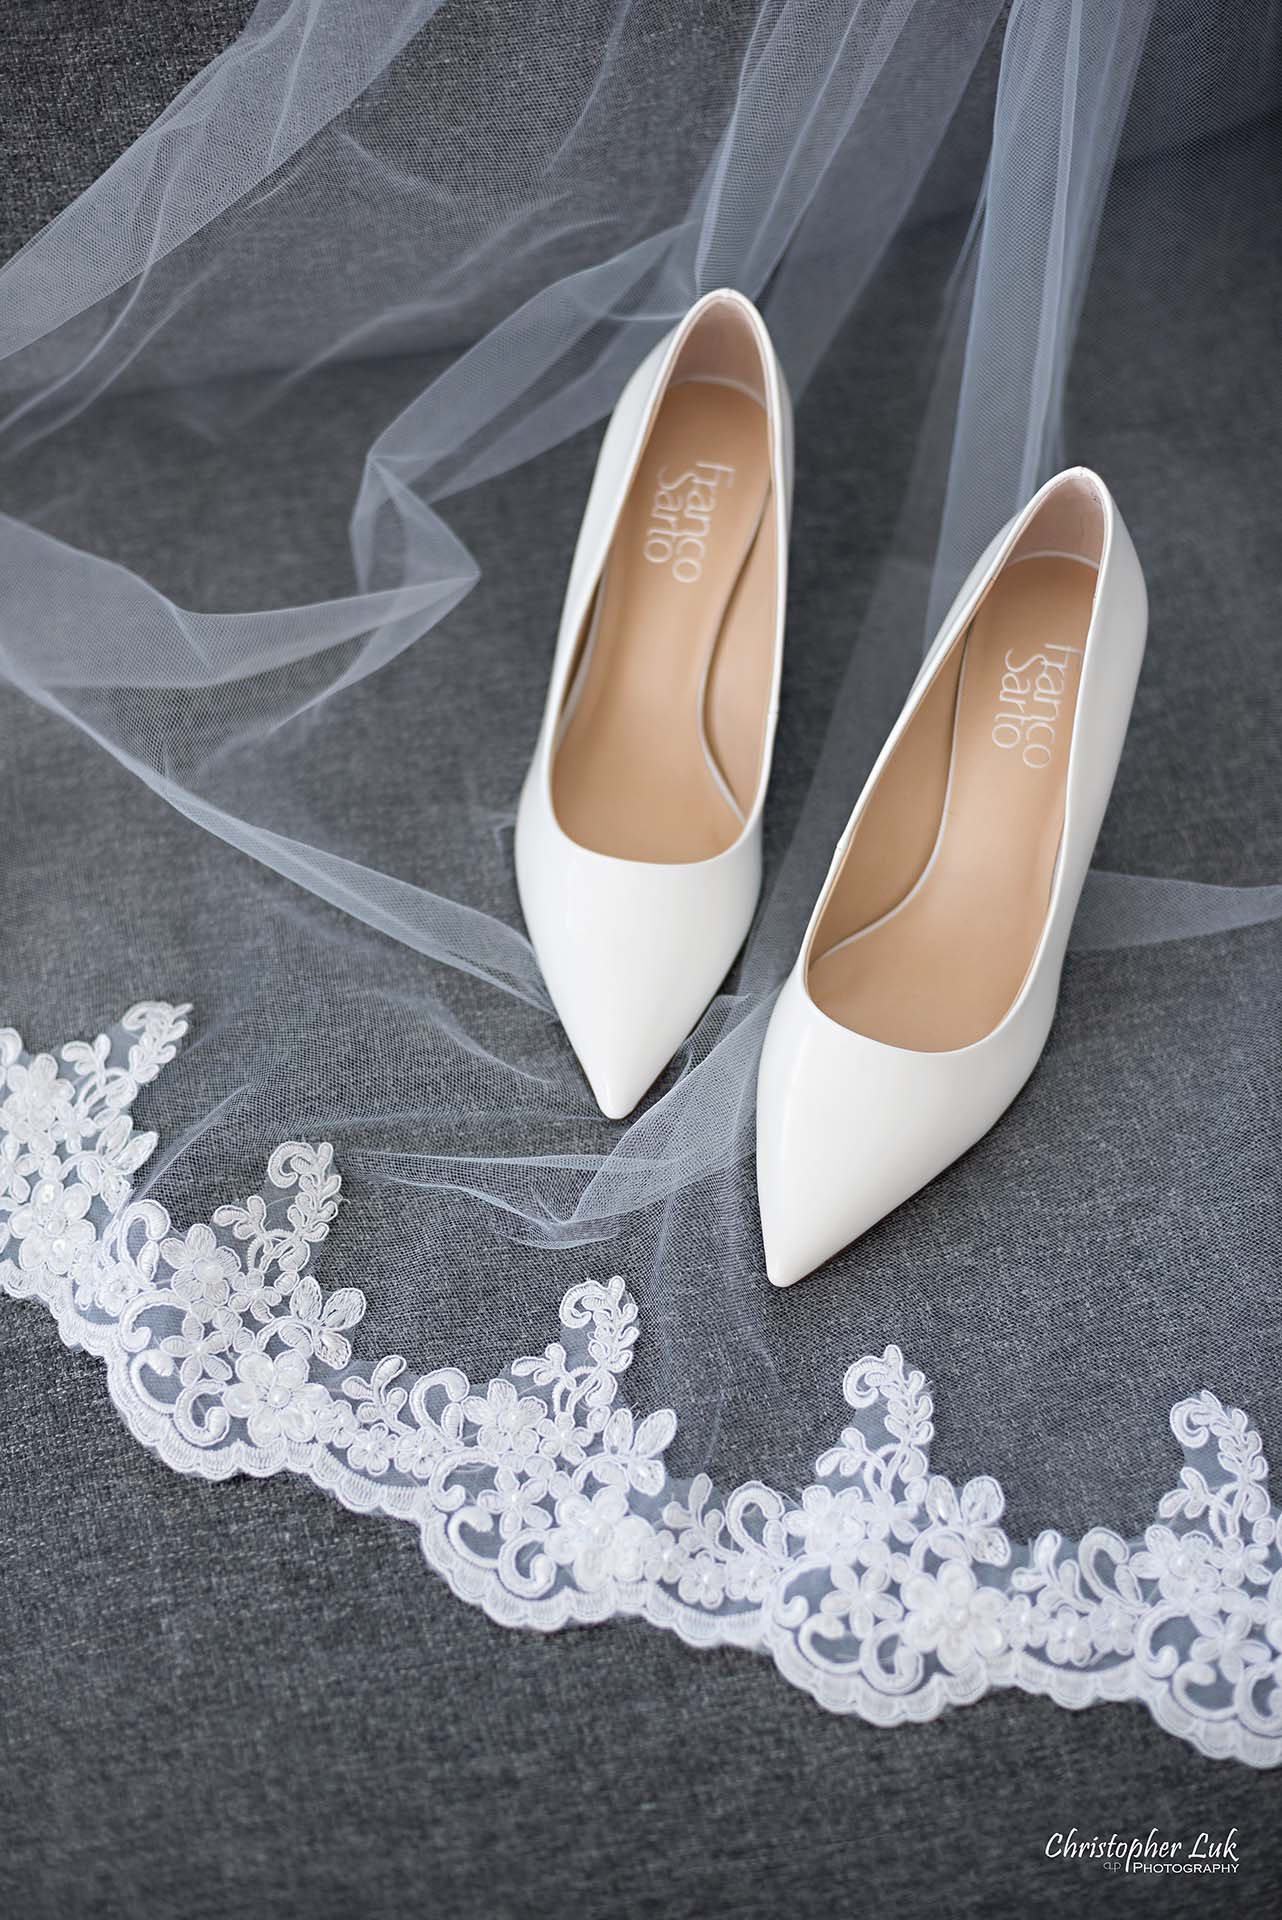 Christopher Luk Toronto Wedding Photographer - White Shoes Lace Veil Detail